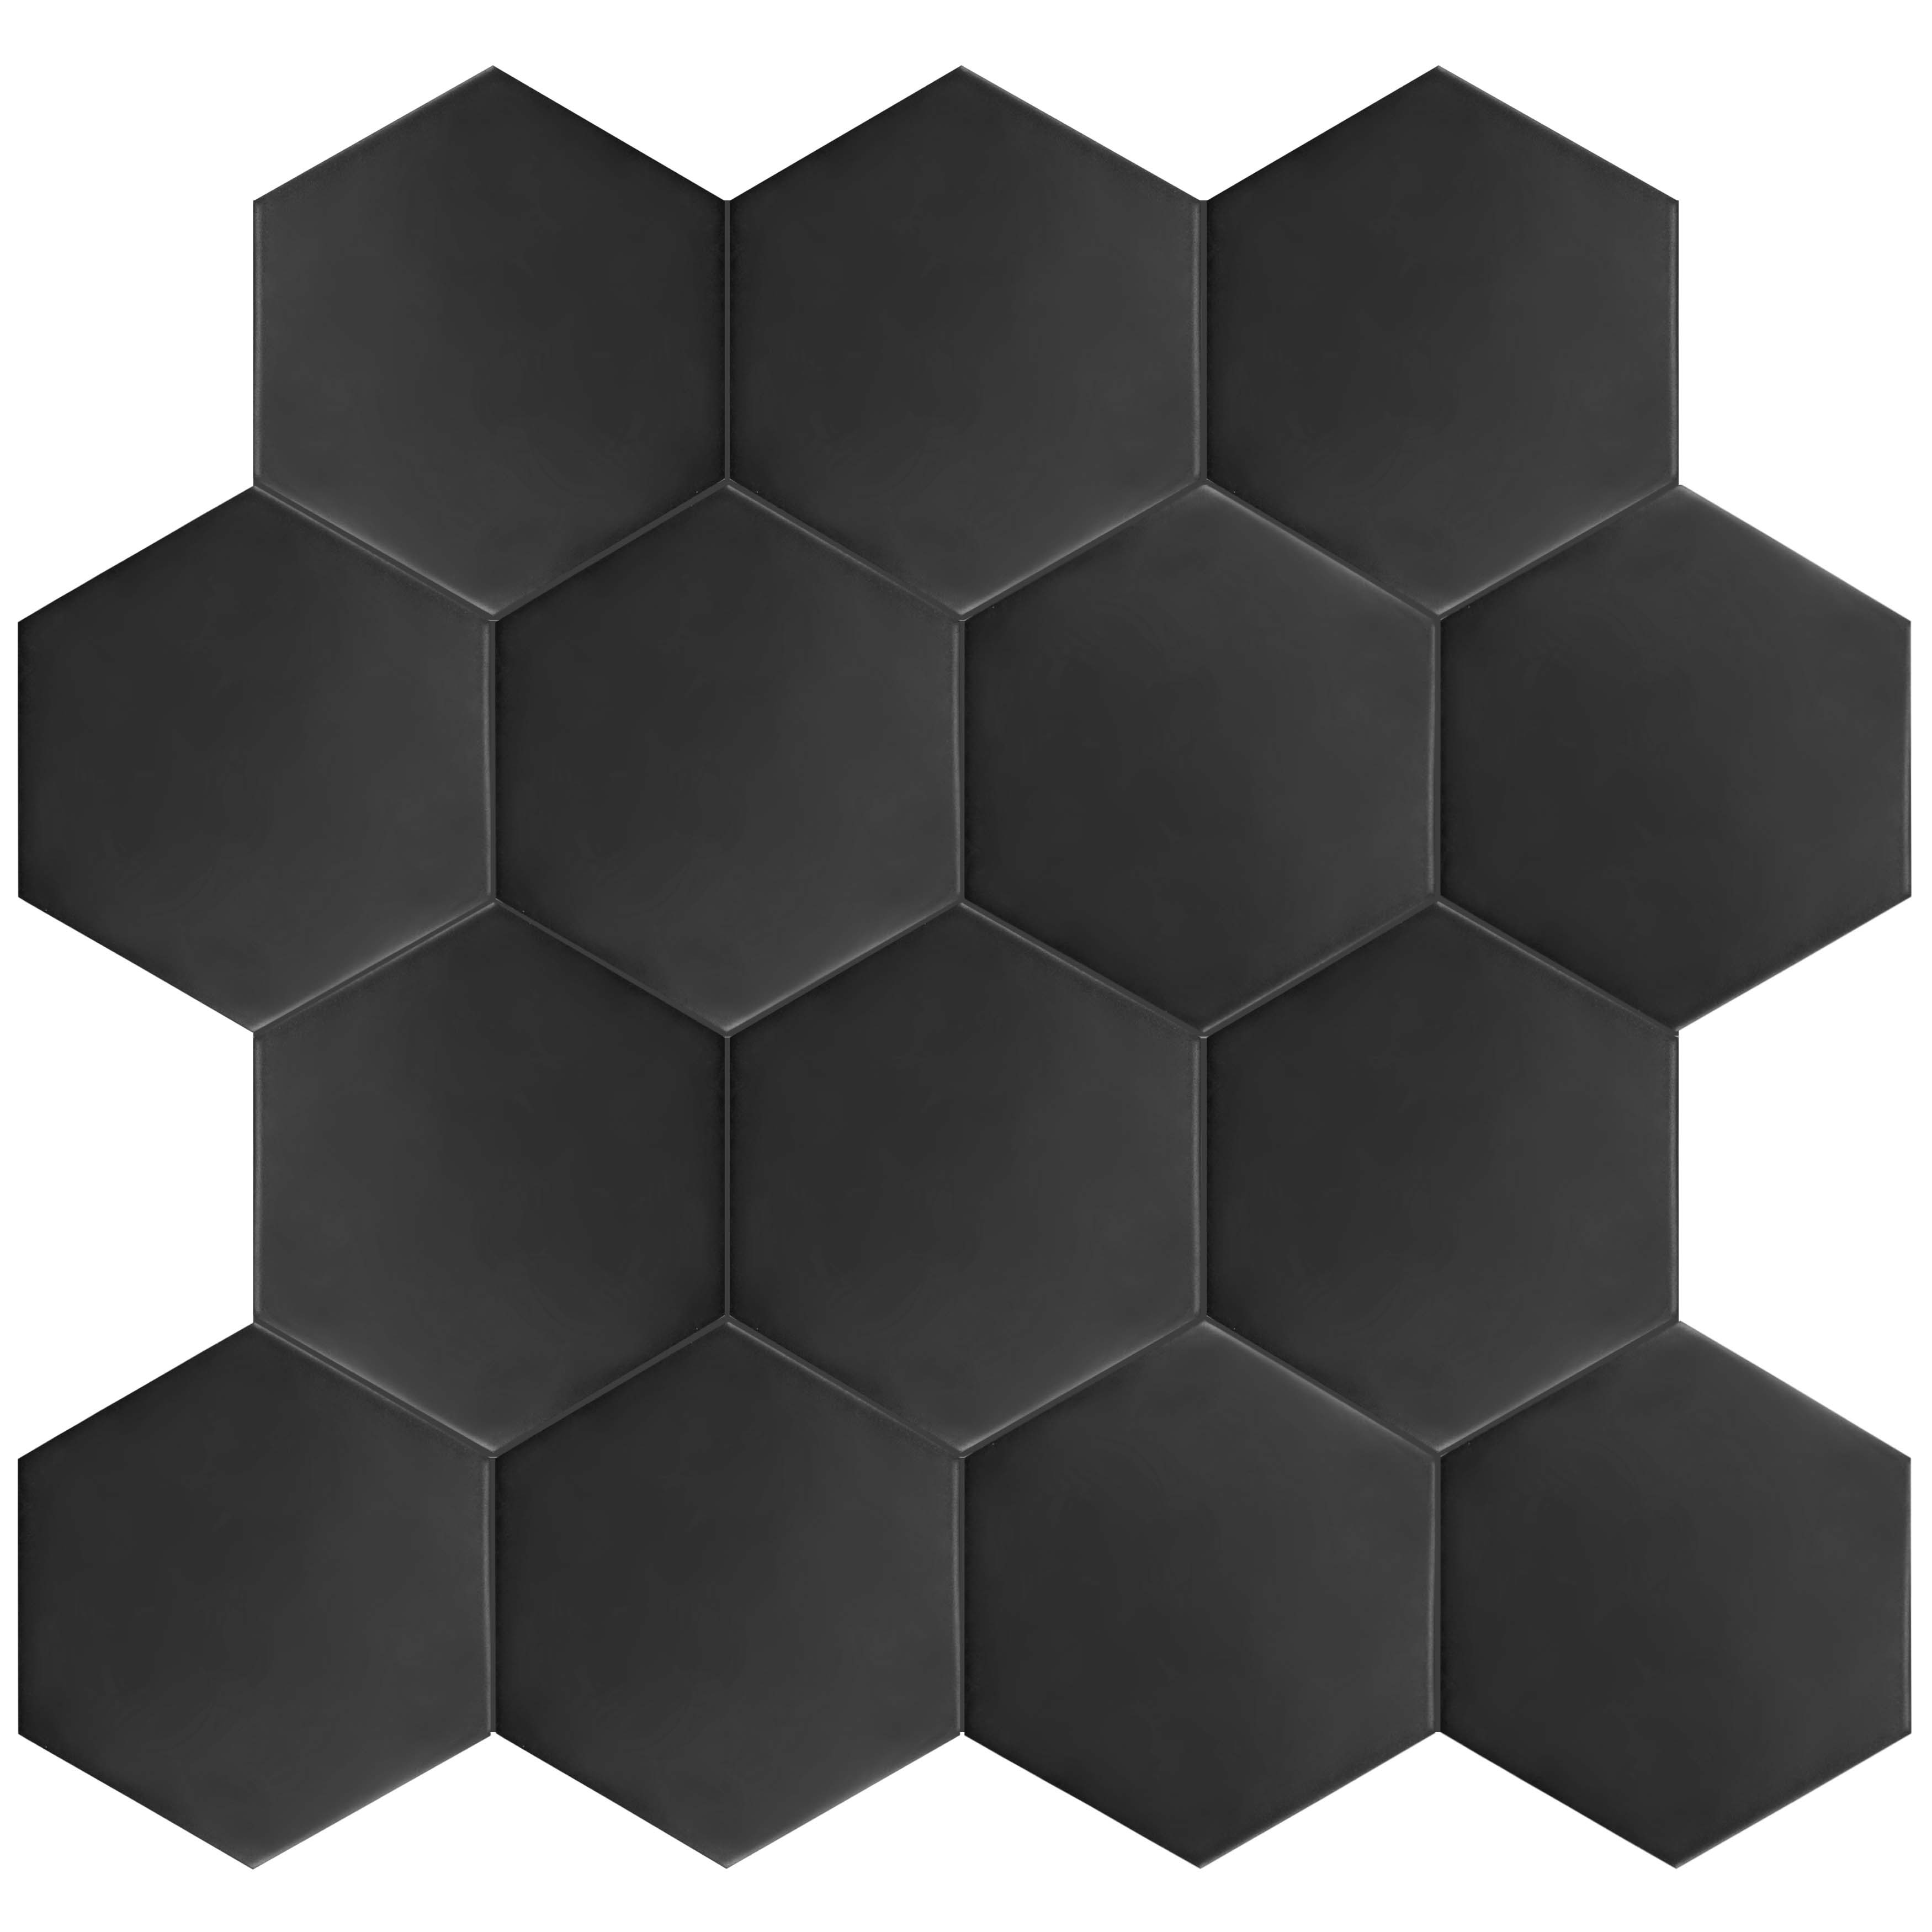 Somertile matte black porcelain 7x8 inch hextile floor and wall tile somertile matte black porcelain 7x8 inch hextile floor and wall tile case of 14 free shipping on orders over 45 overstock 15742538 dailygadgetfo Choice Image